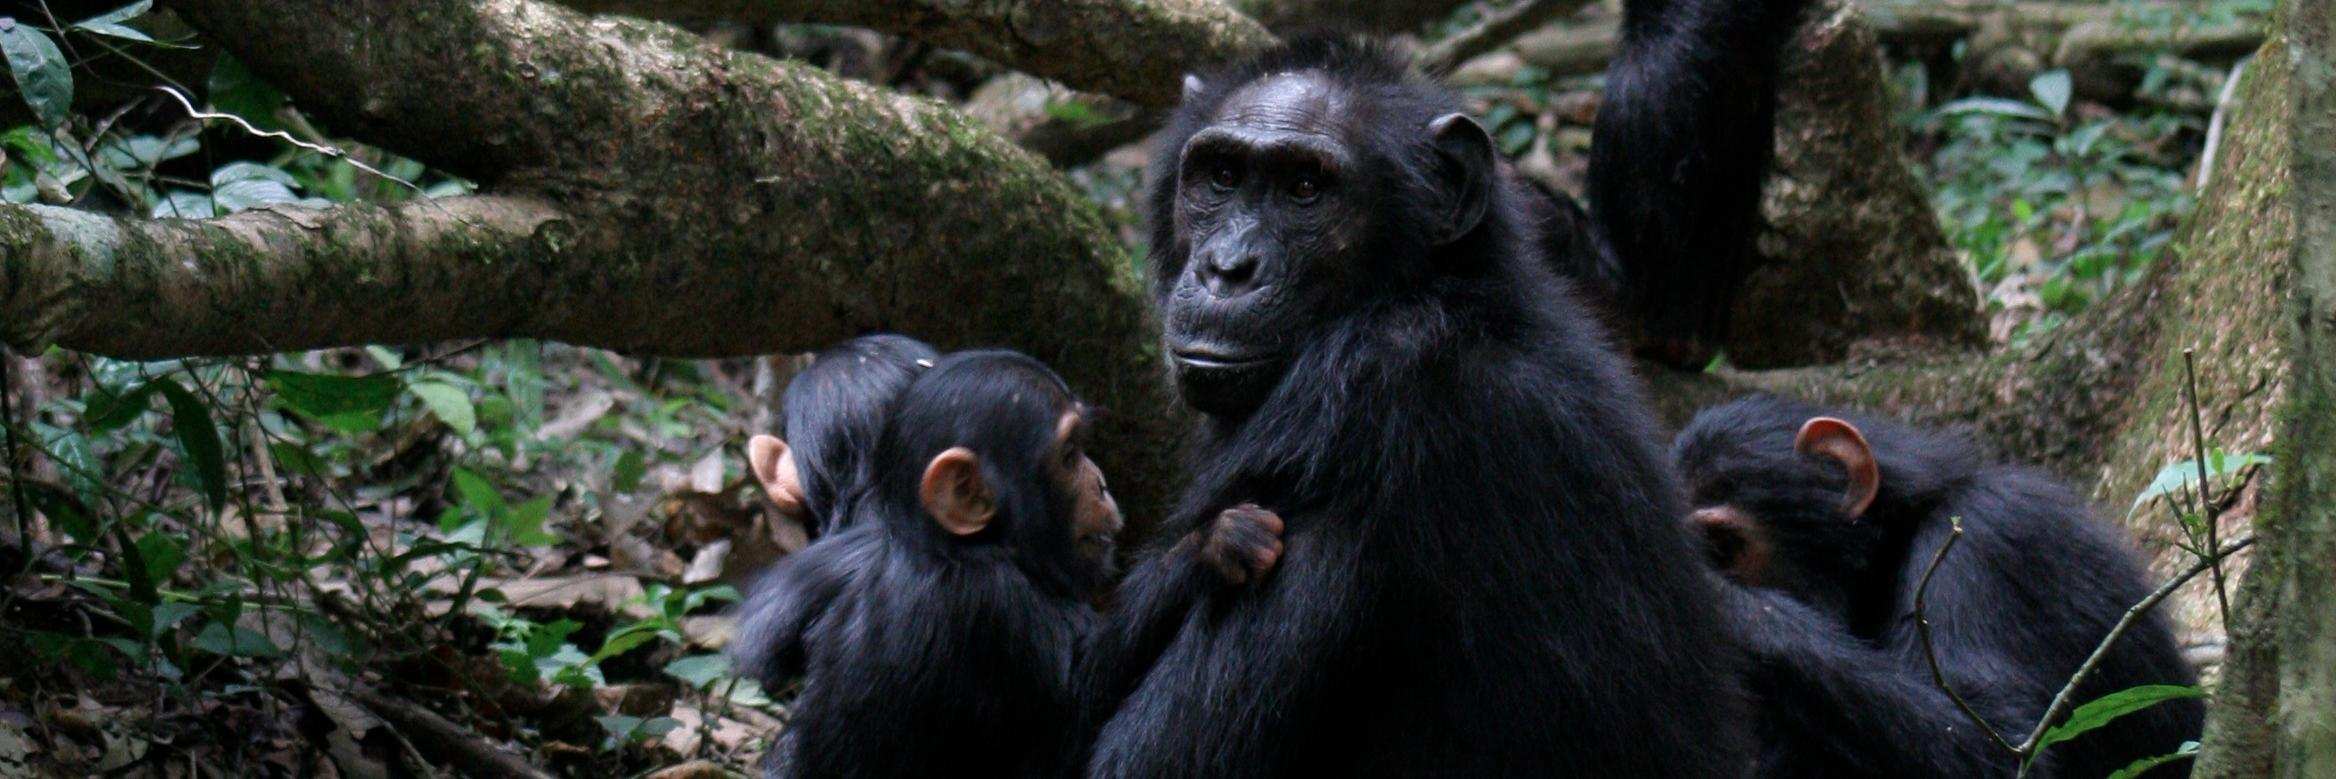 """""""You don't need a degree to be a primatologist"""" Vernon talks about the 'front line primatologists' the field assist… https://t.co/y0BKjIoDH4"""